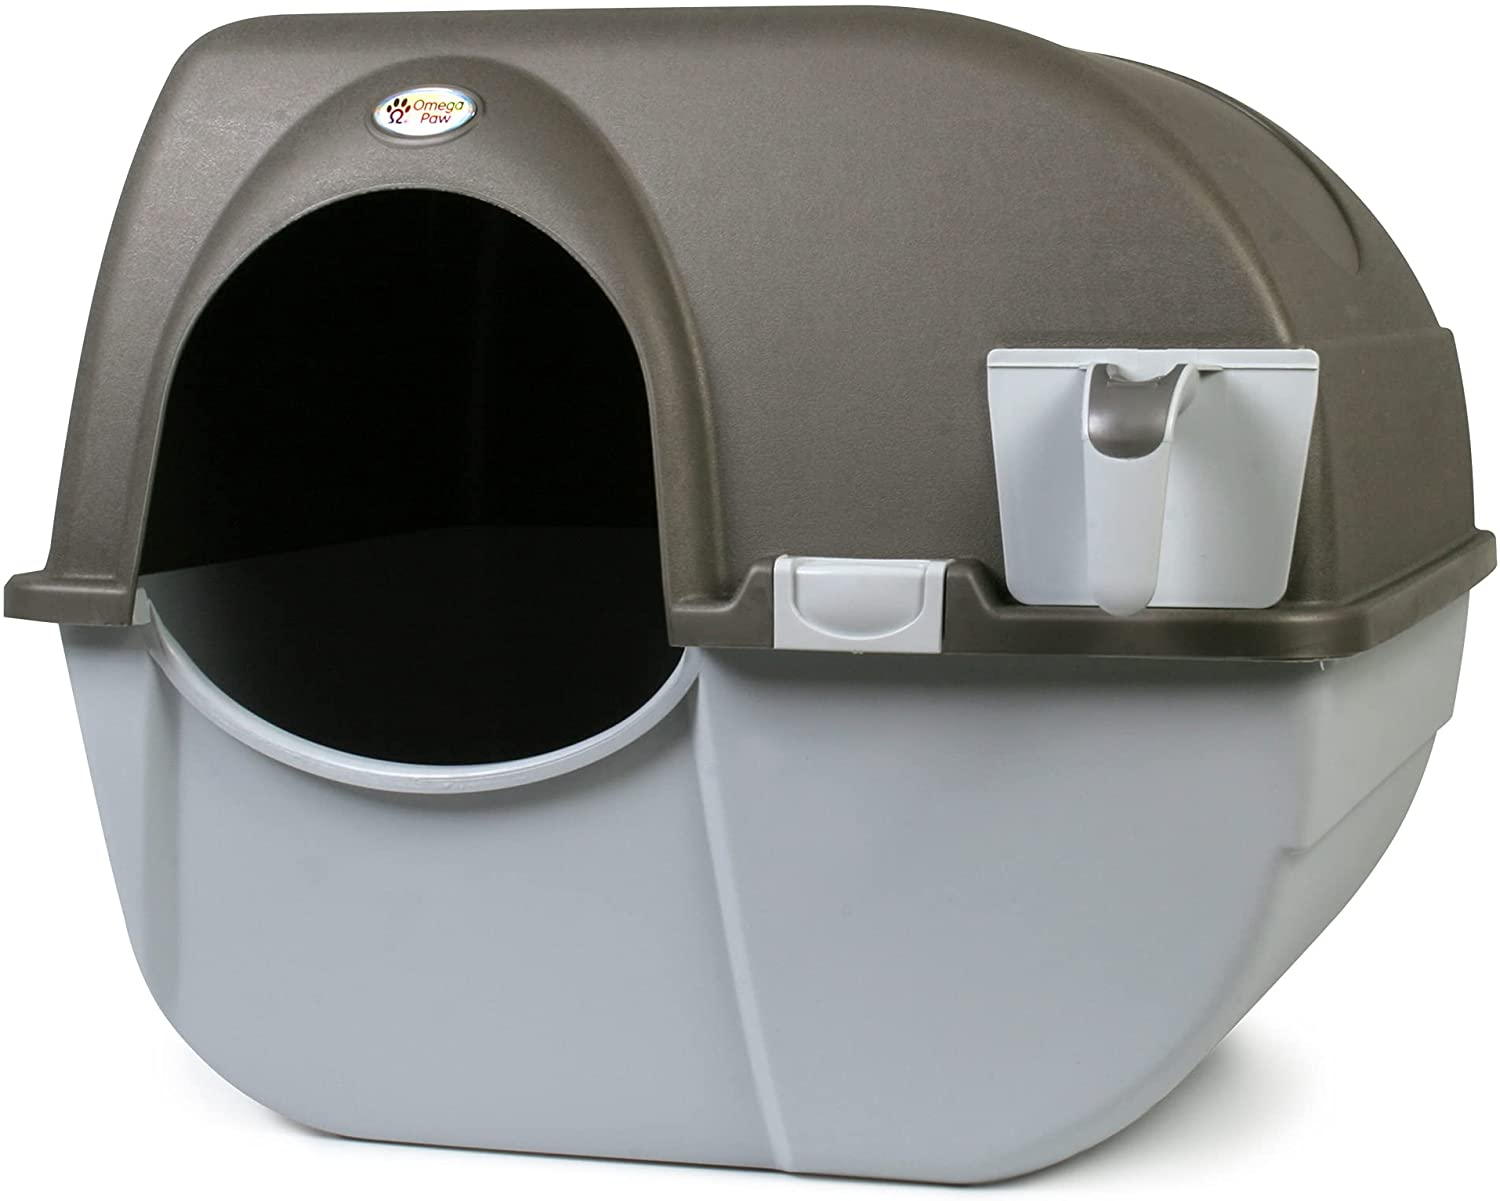 Omega Paw NRA15 Self Cleaning Litter Box Regular Size